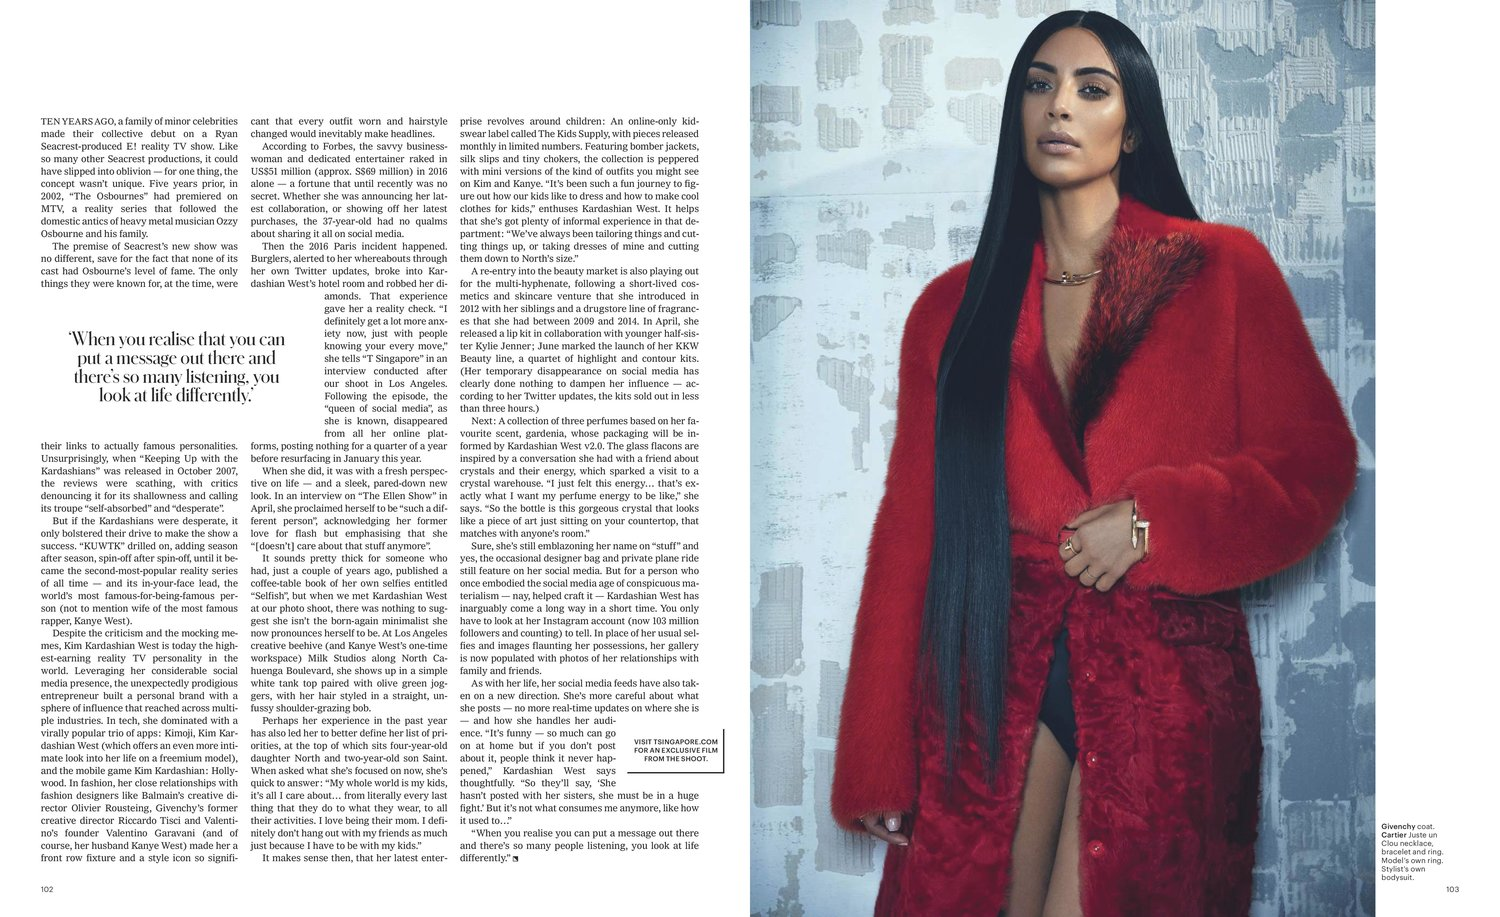 P100-111+Well+-+Cover+story+Kim-page-002+2.jpg